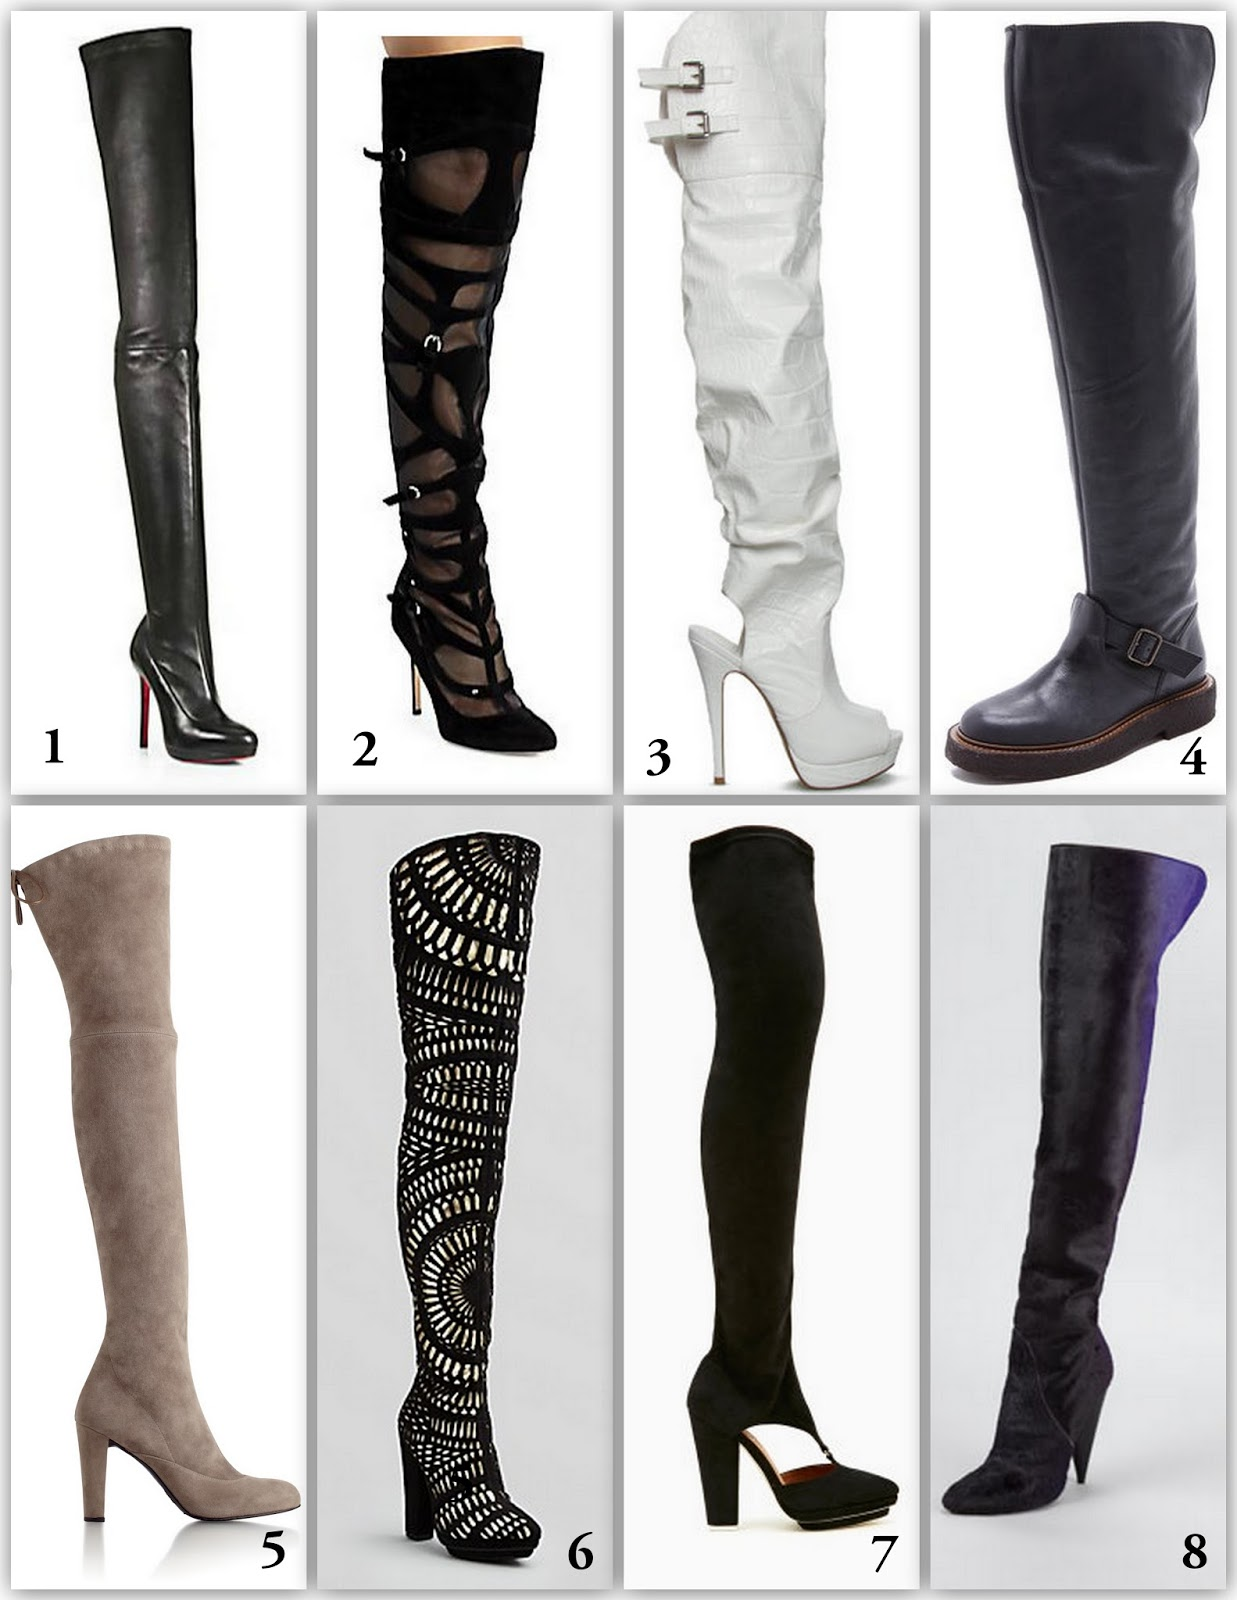 Fashion of Philly: 8 Over the Knee Boots to Crave for Fall